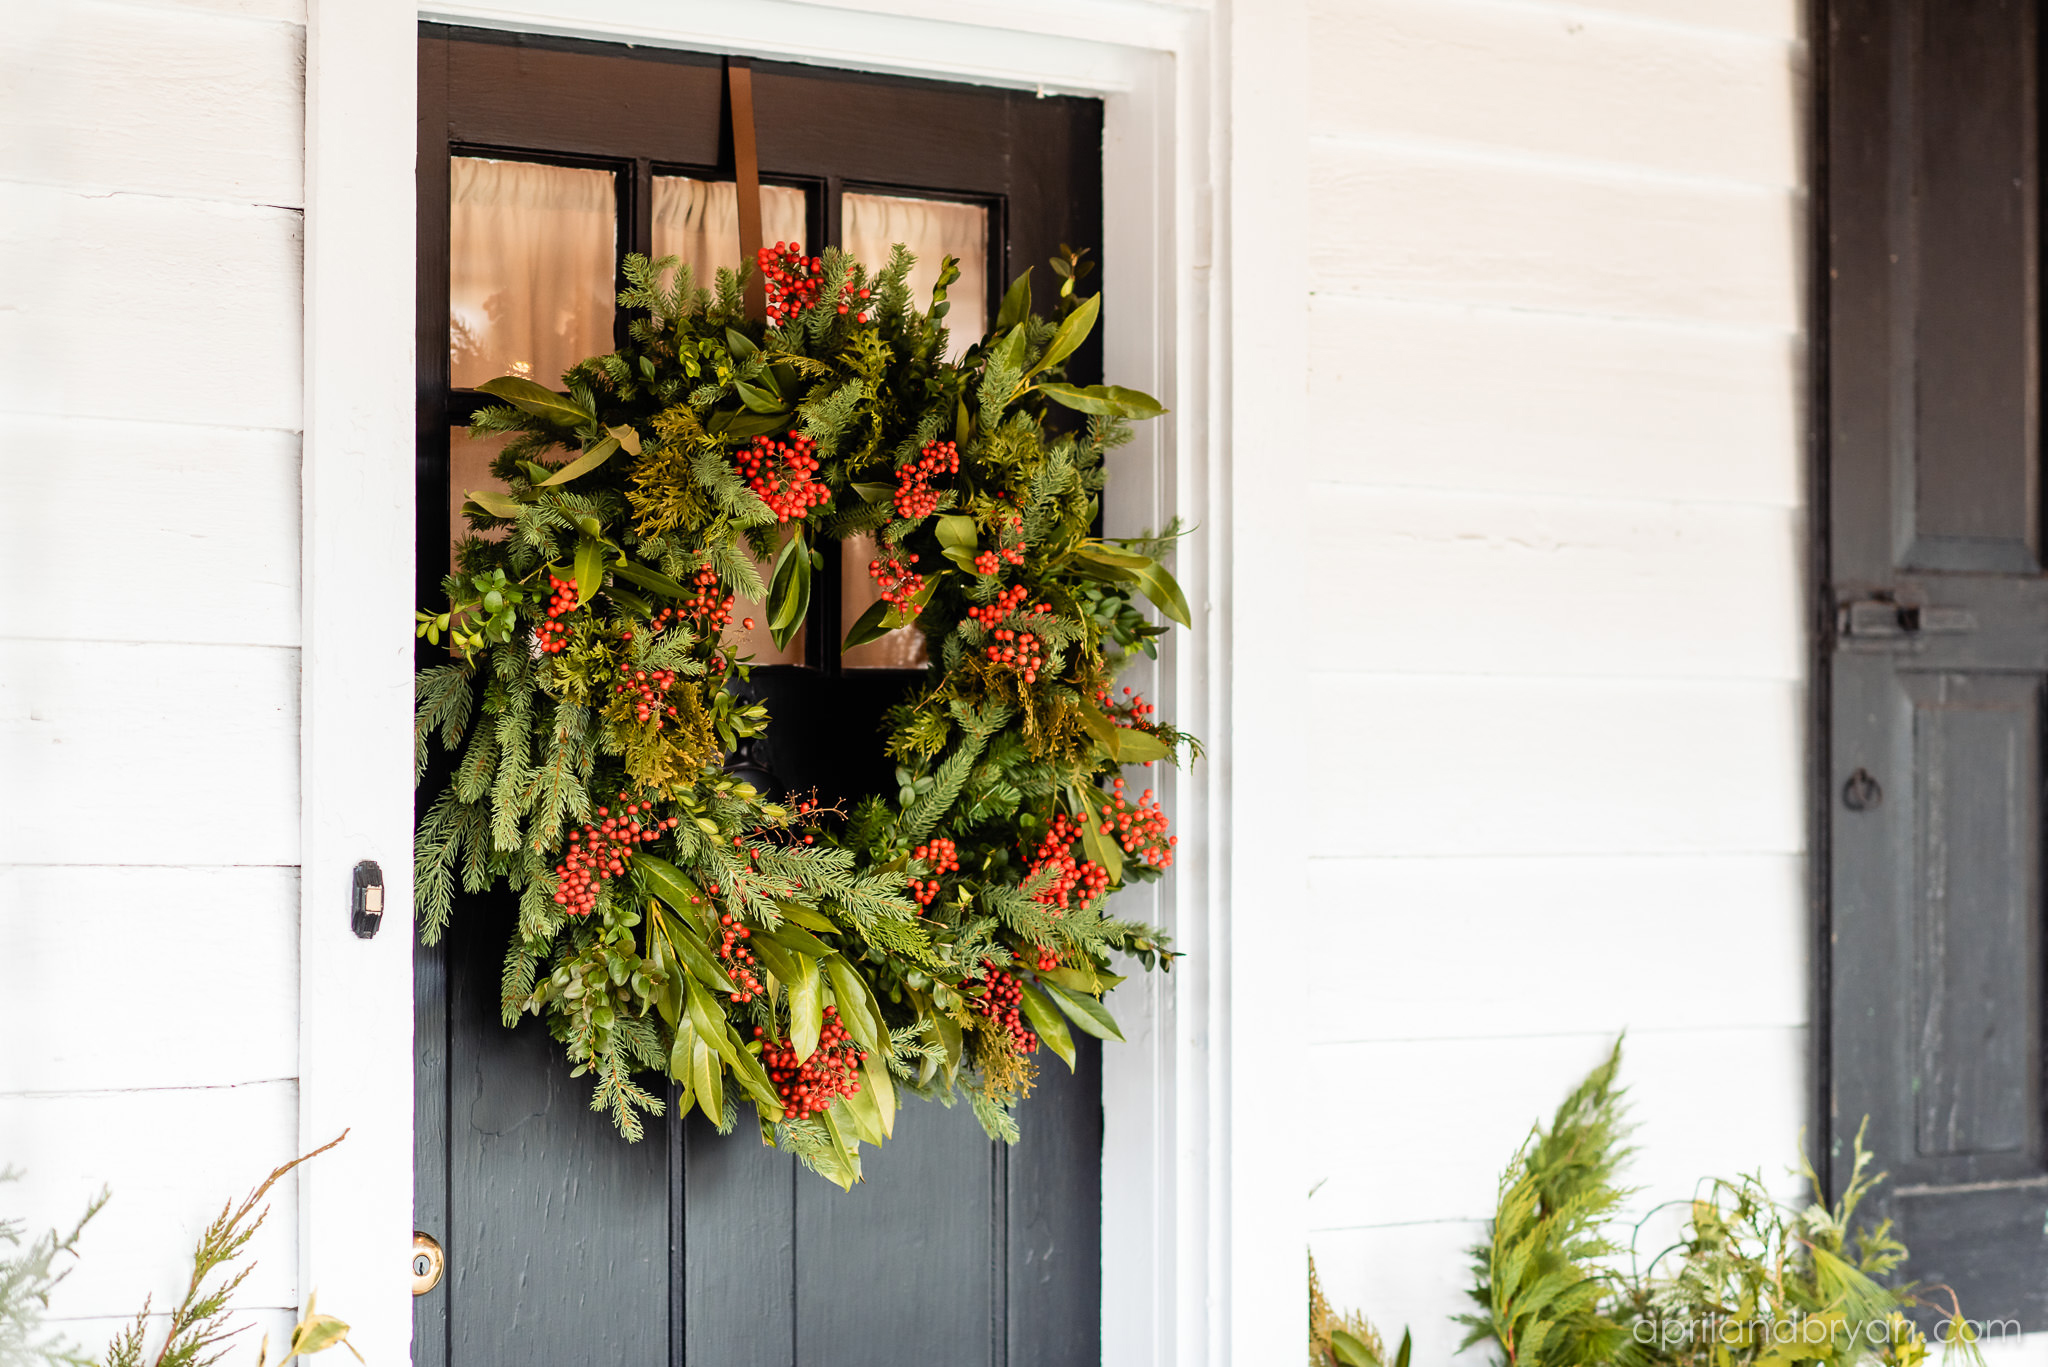 A green wreath adorns the door of the couple's Mount Joy home. Hannah and Ethan Farrell had their classic romantic styled wedding held at their home in Mount Joy, followed by a reception at the catacombs underneath Bube's Brewery. Photographed by April & Bryan Photography, the couple had the opportunity to showcase their early 1900s style and accommodate a small guest list. Featured on Dream Weddings.